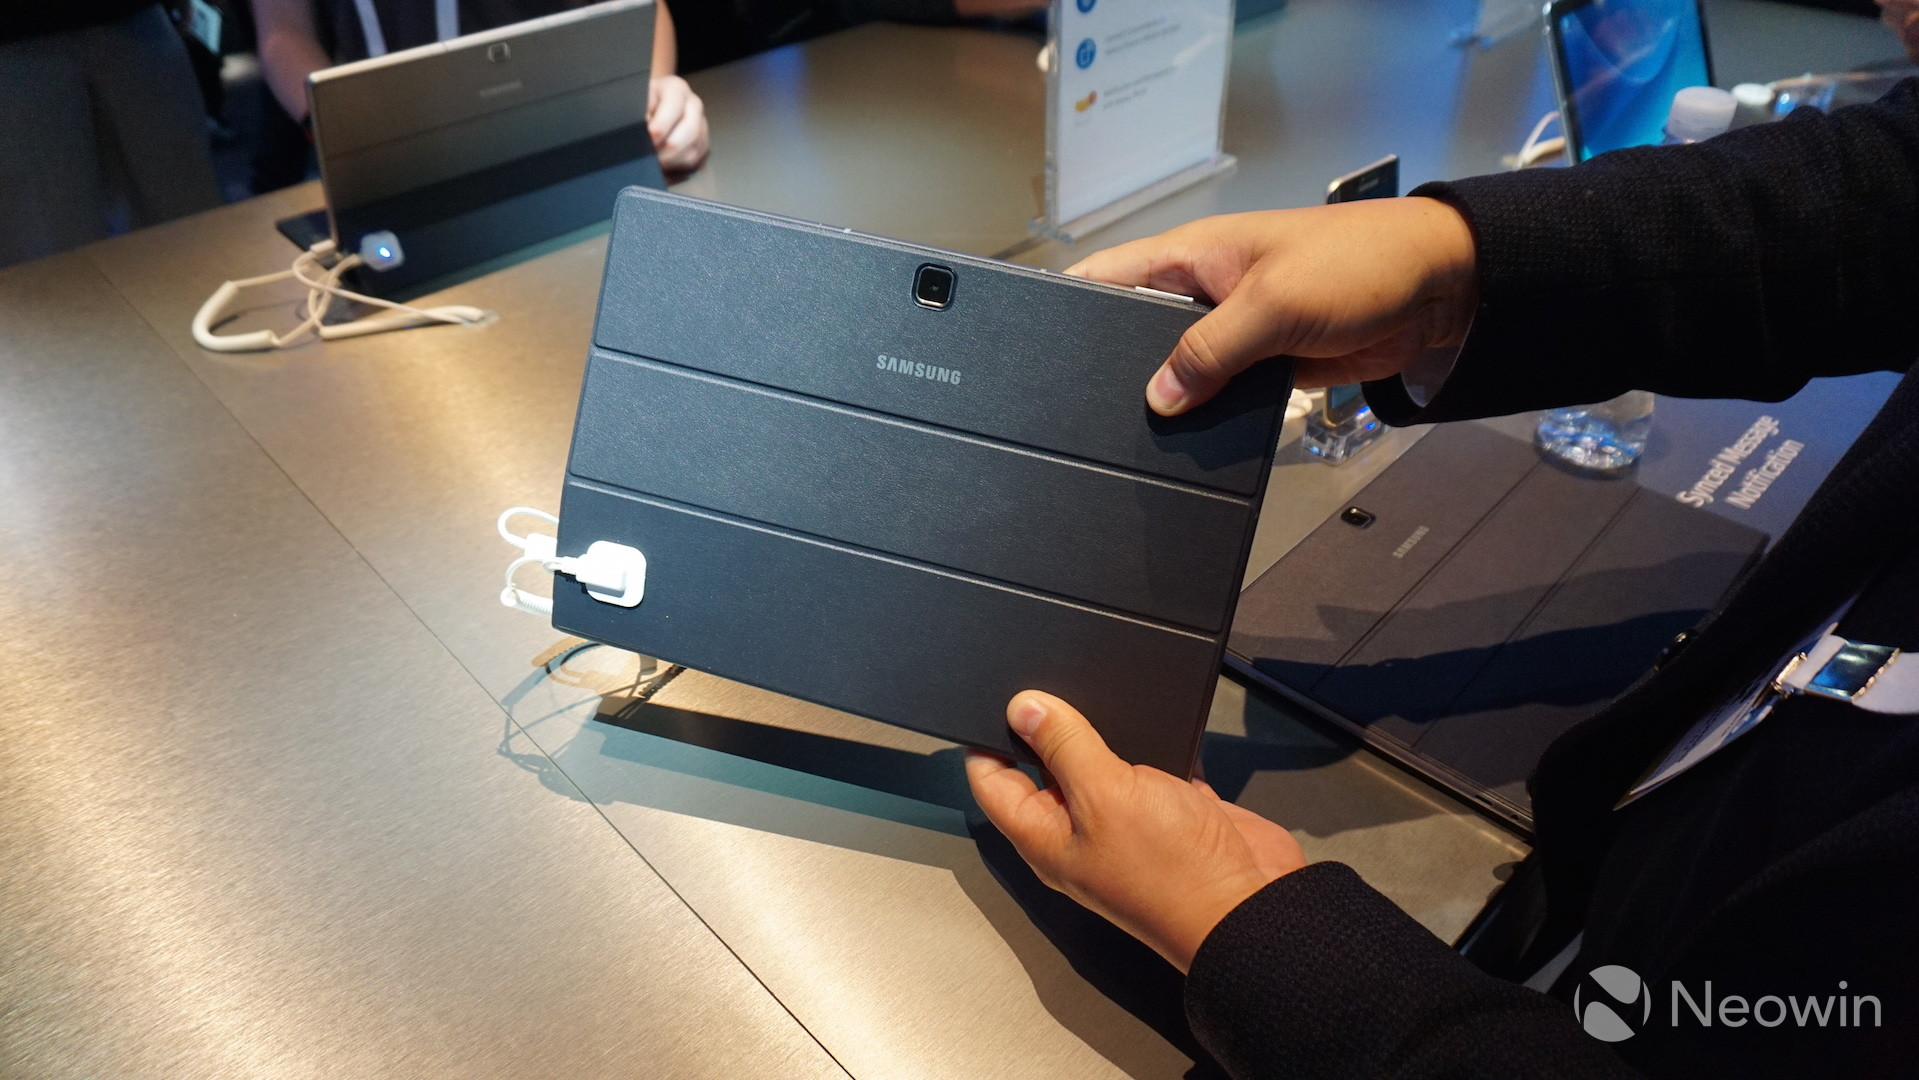 Hands On With Samsung S Galaxy Tabpro S 2 In 1 Windows 10 Tablet Neowin